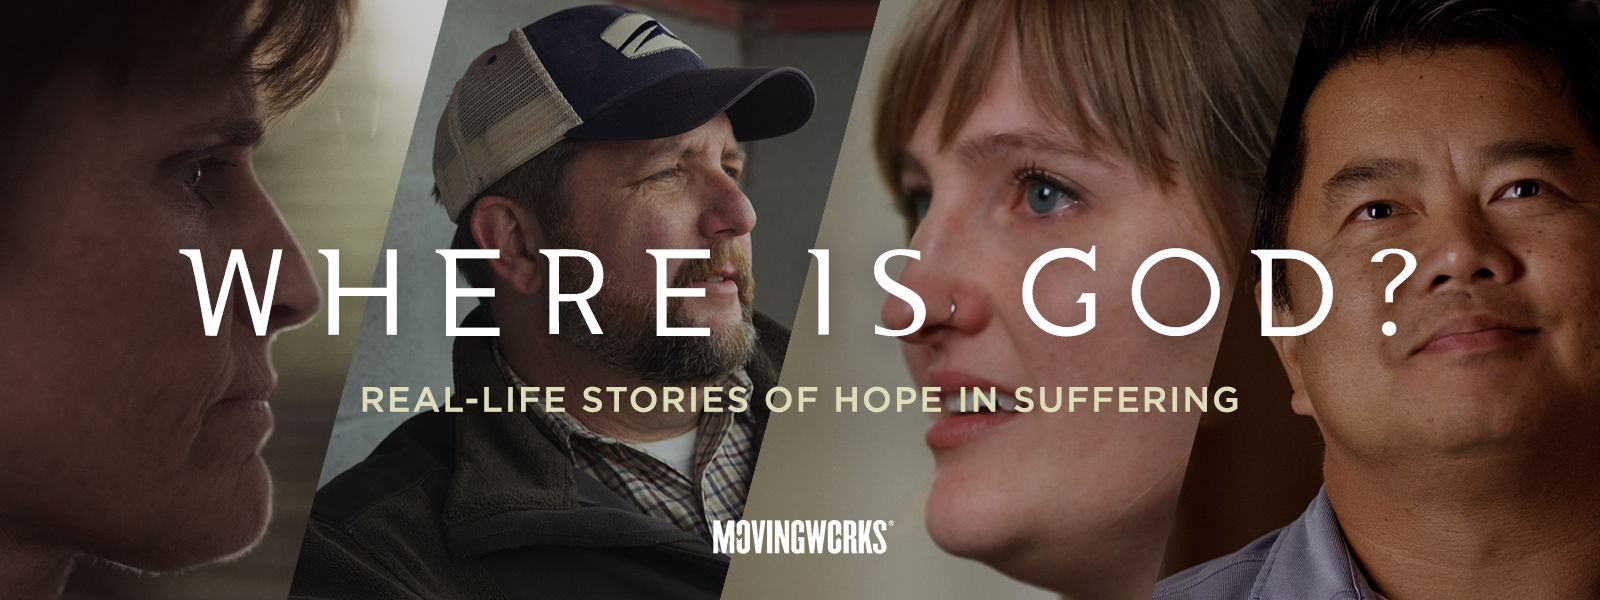 Where is God? Real-Life Stories of Hope in Suffering